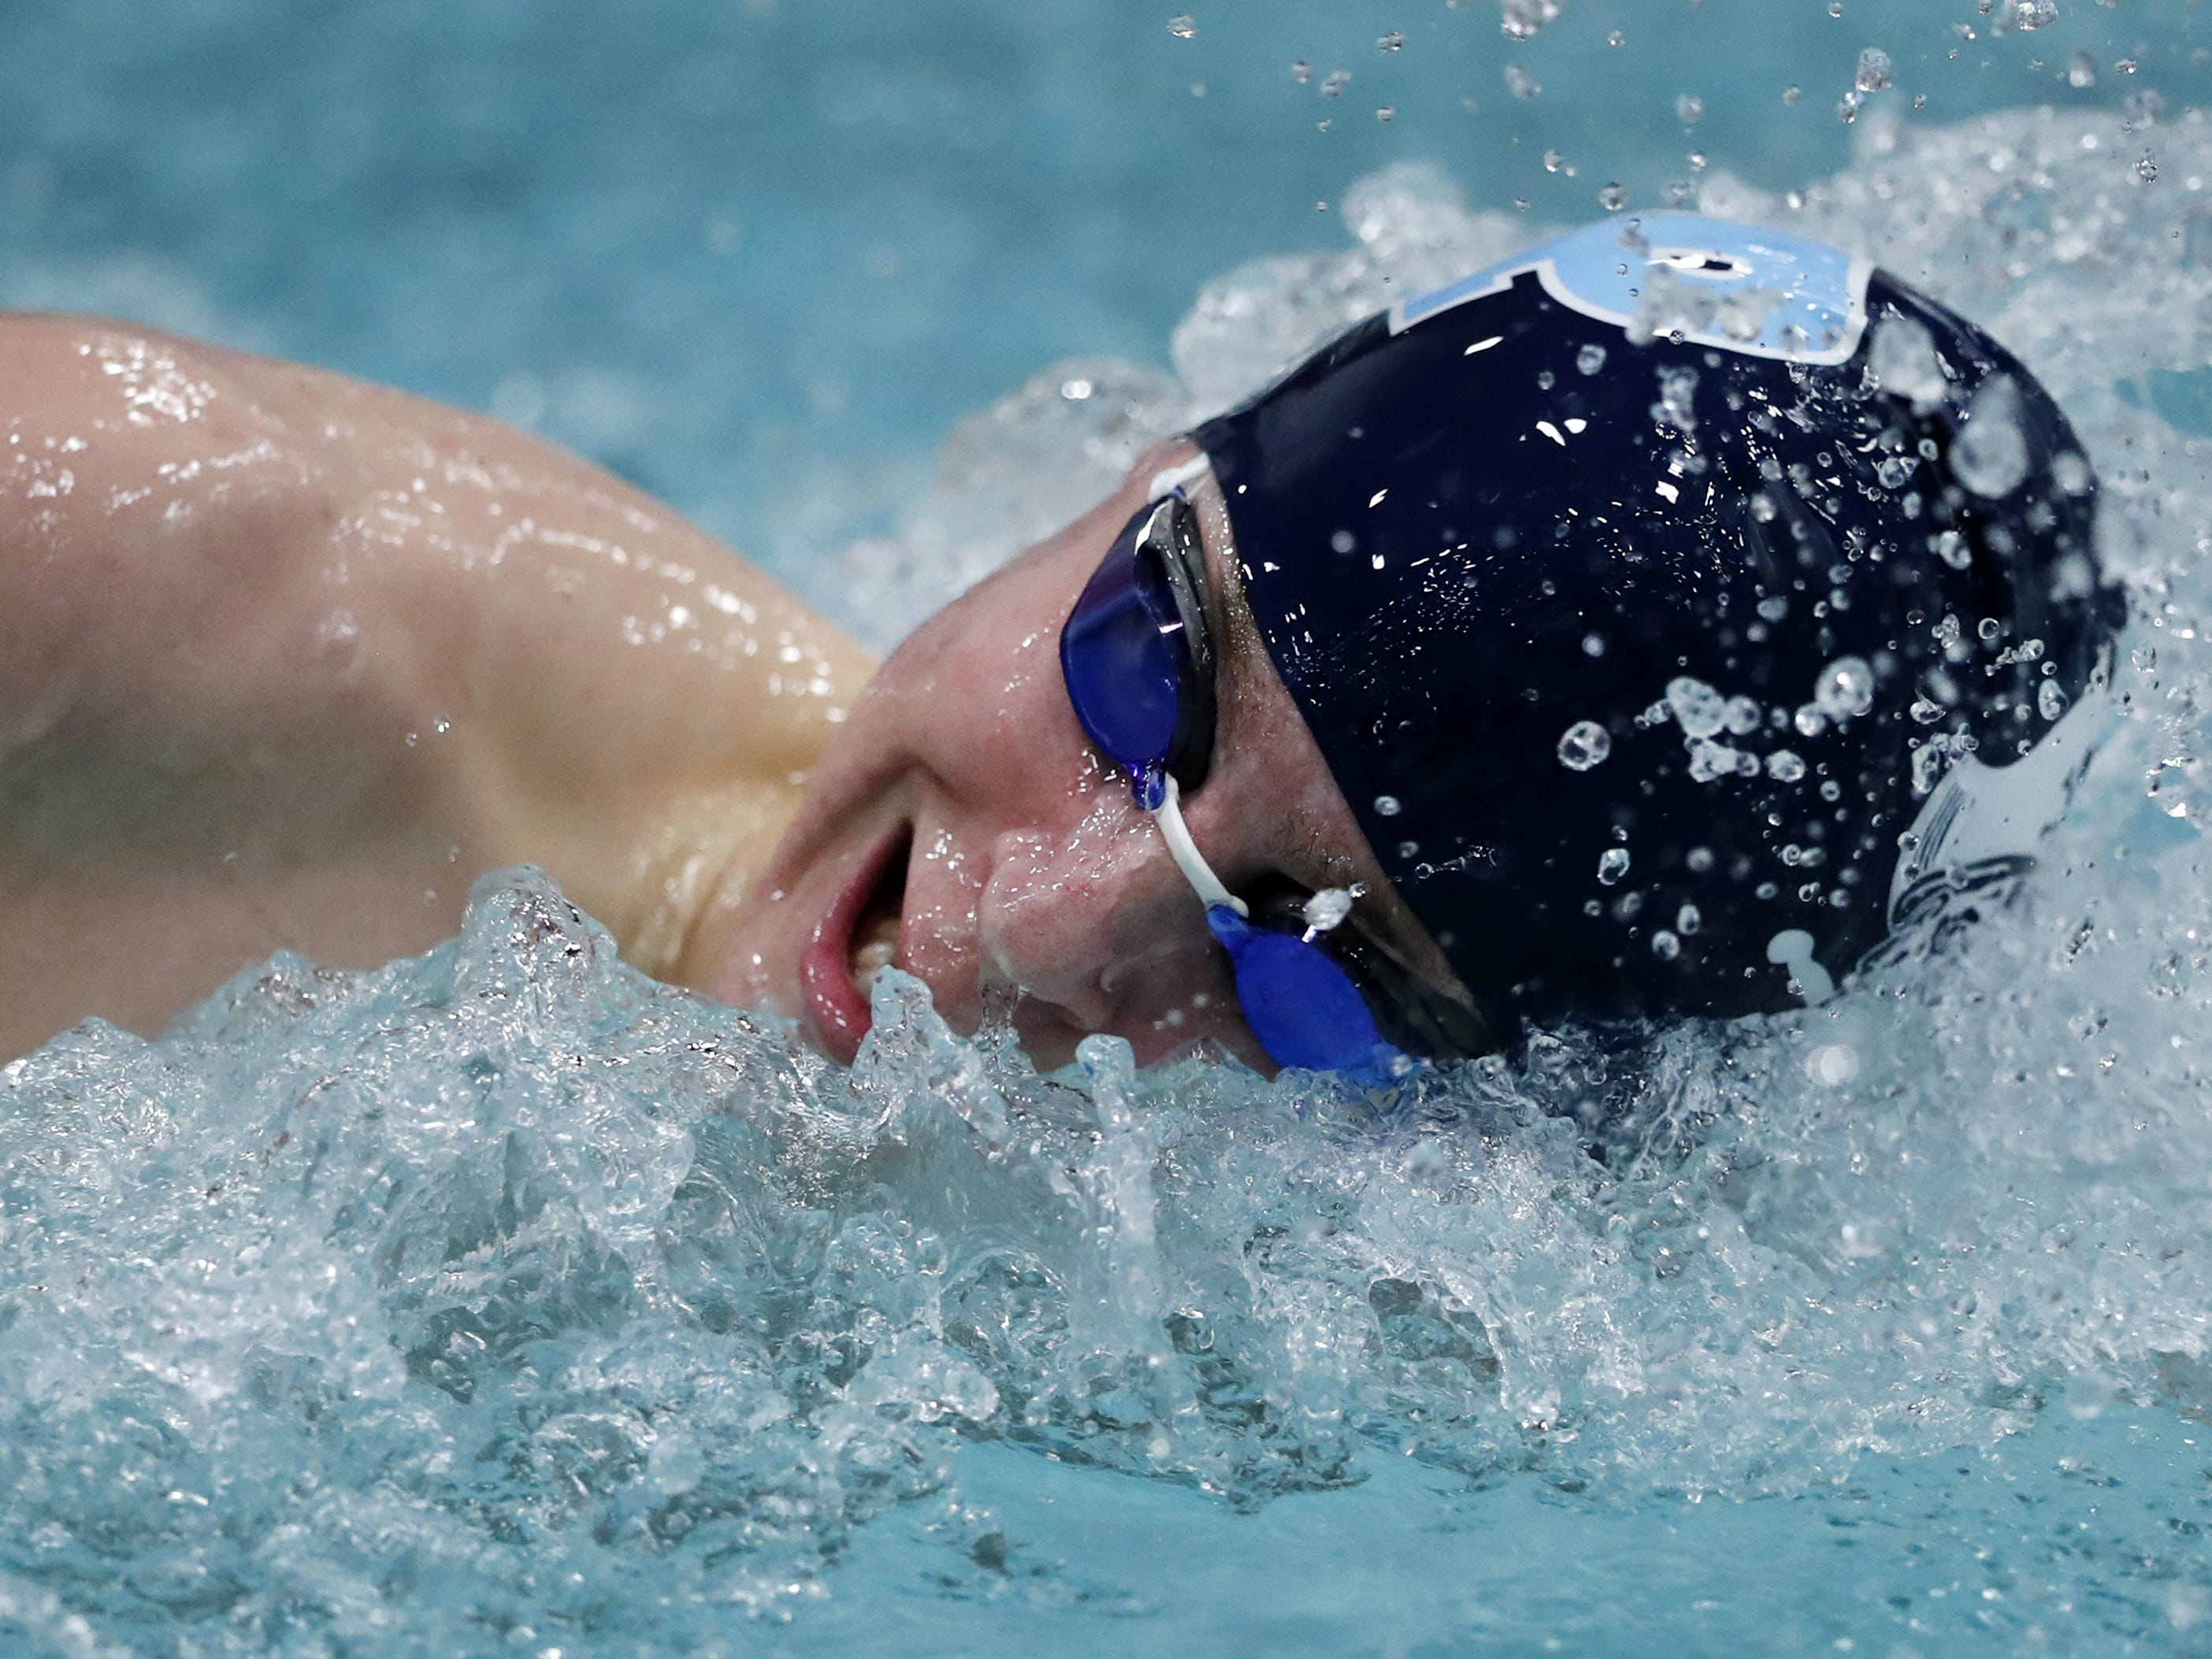 Bay PortÕs  Lucas Thibert races in the 500 yard freestyle during the Division 1 2019 State Boys Swimming and Diving Championships Saturday, Feb. 16, 2019, at the UW Natatorium in Madison, Wis. Danny Damiani/USA TODAY NETWORK-Wisconsin